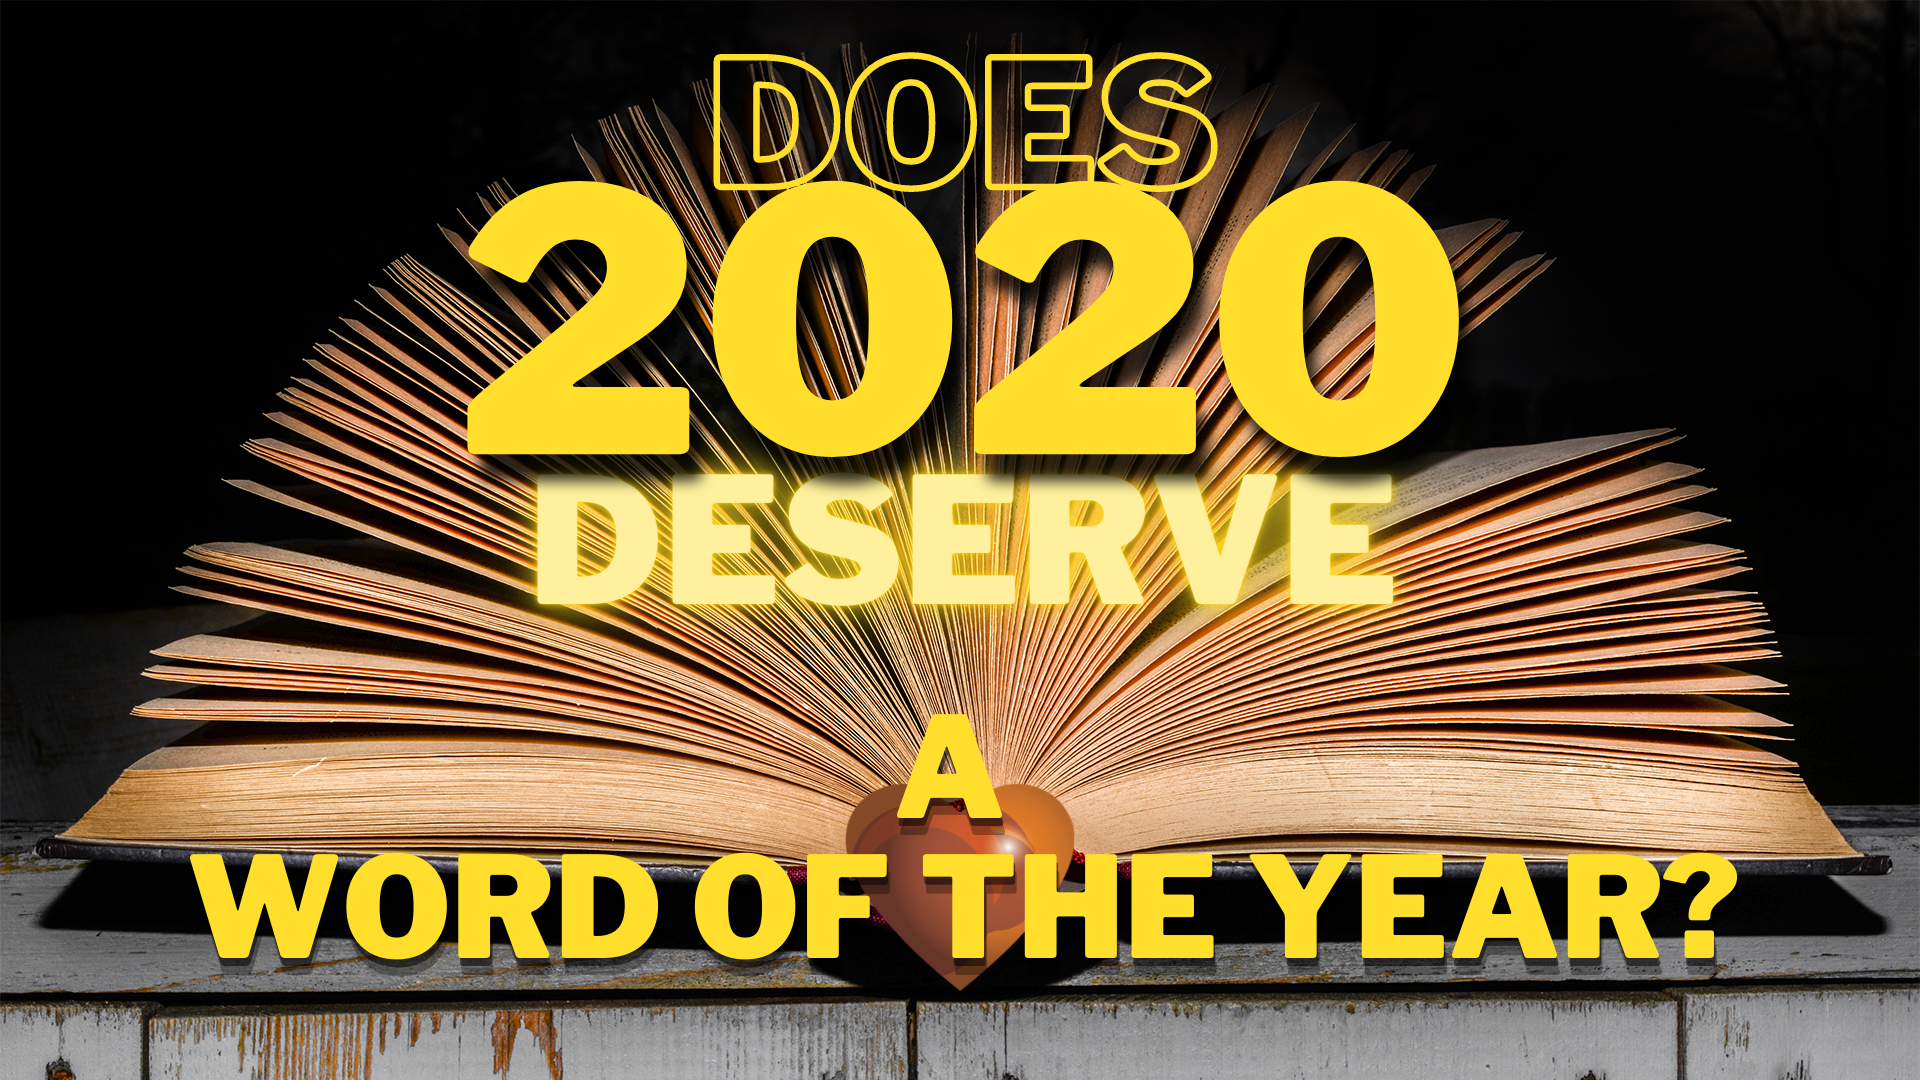 Does 2020 deserve a word of the year